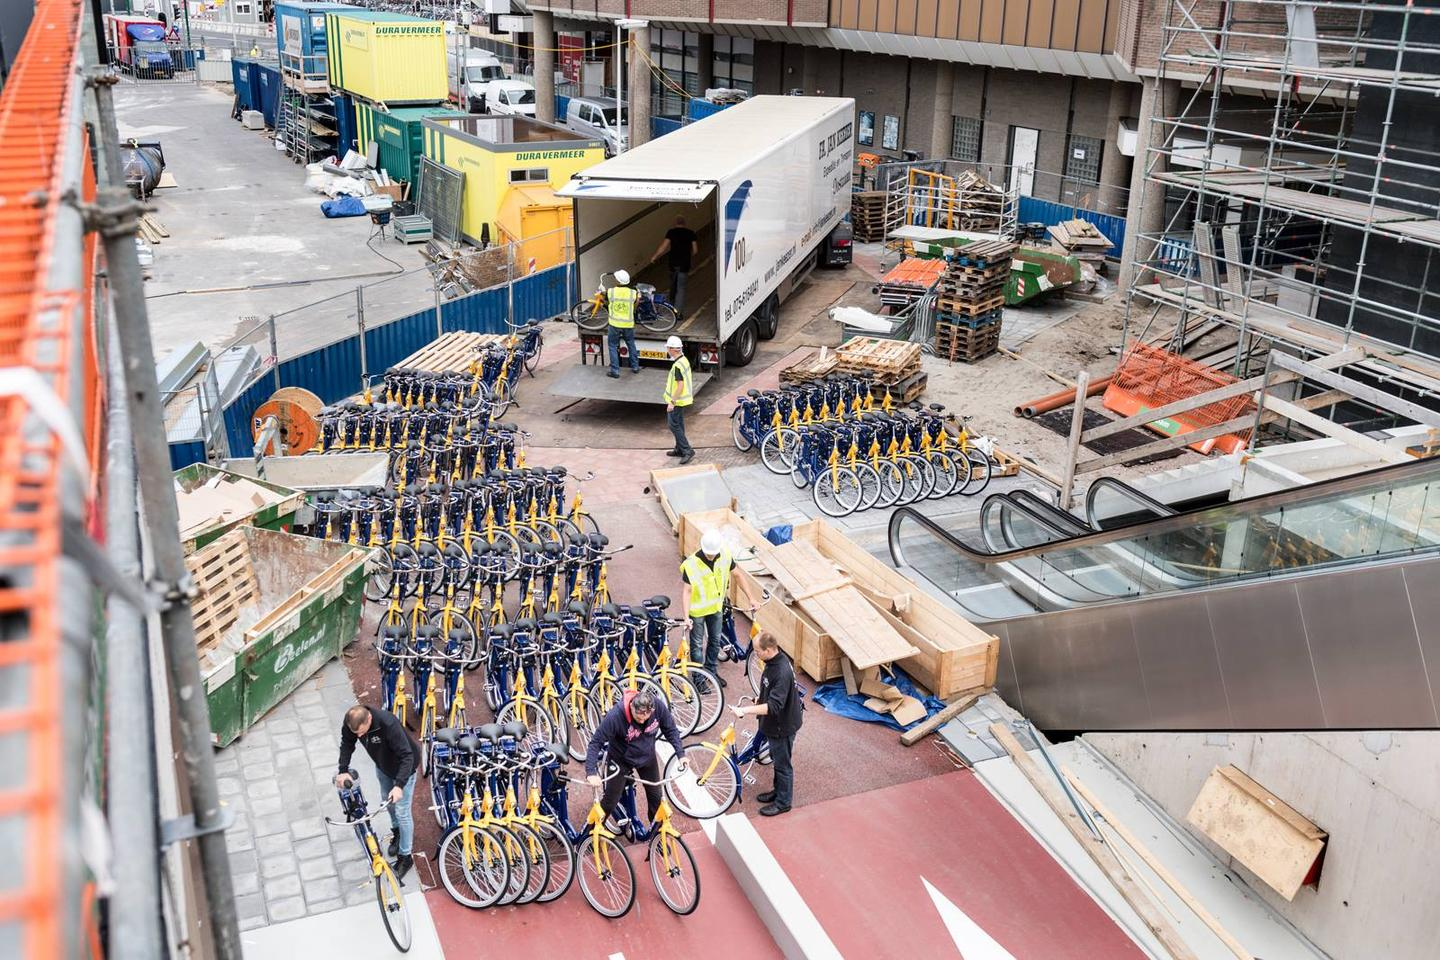 Workmen start moving 700 public hire bicycles into theStationsplein Bicycle Parking facility in Utrecht